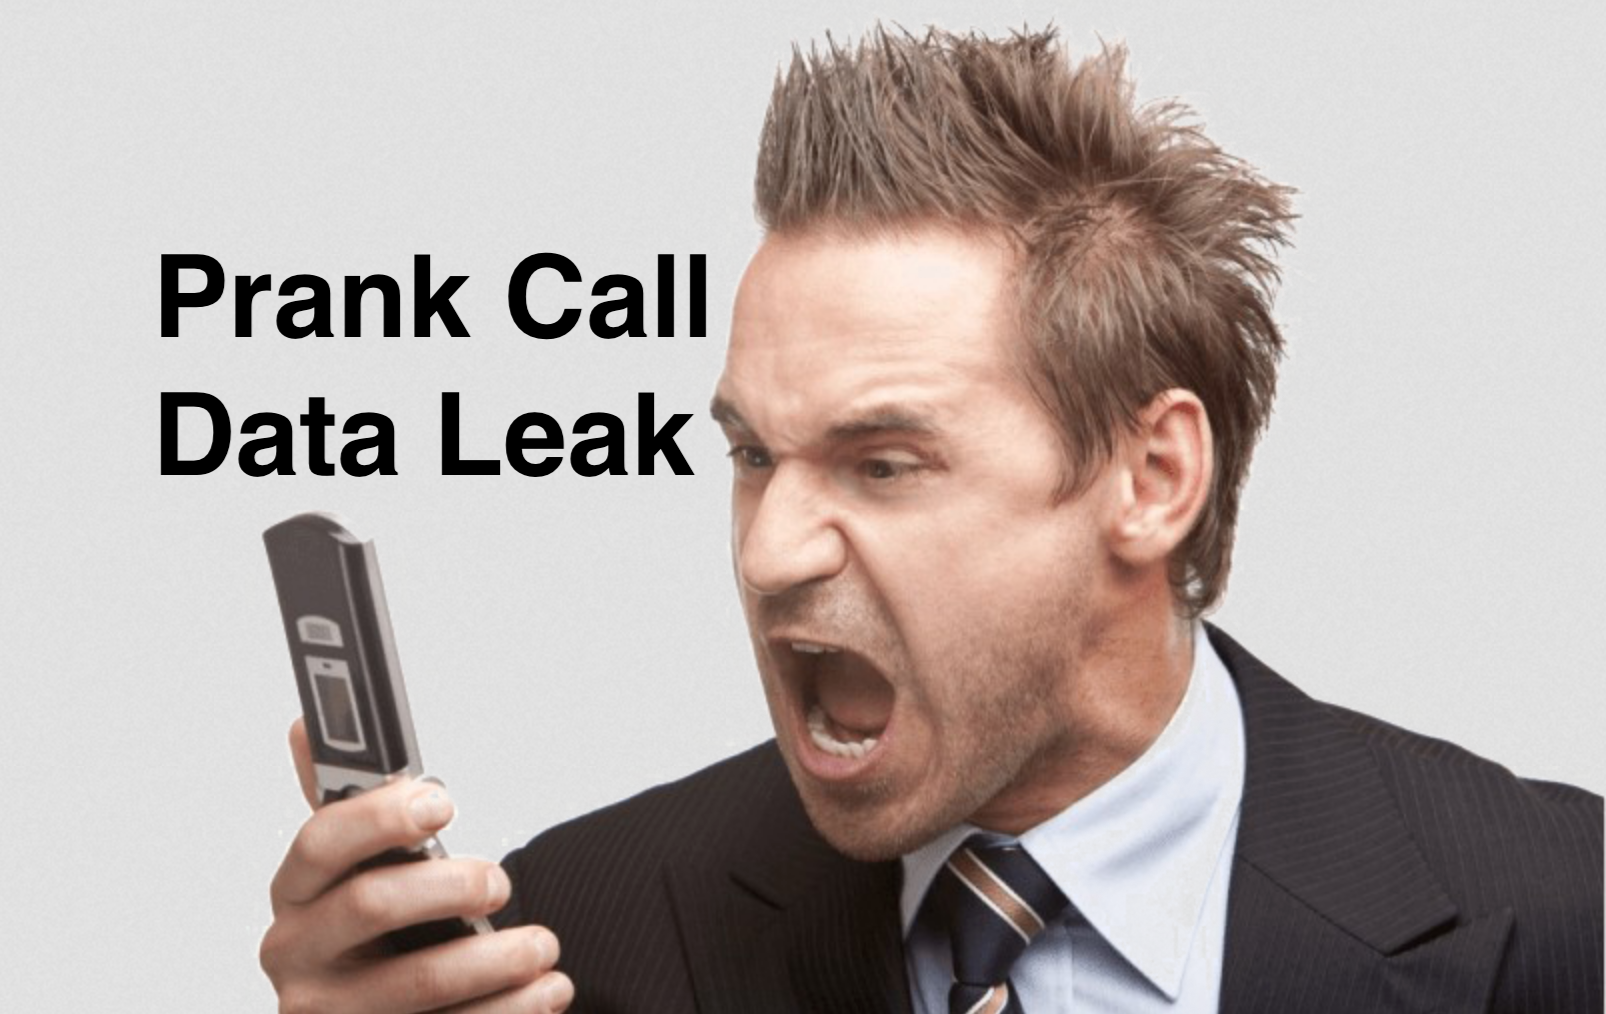 Prank Call Service PrankDial Exposed 138 Million Records Online